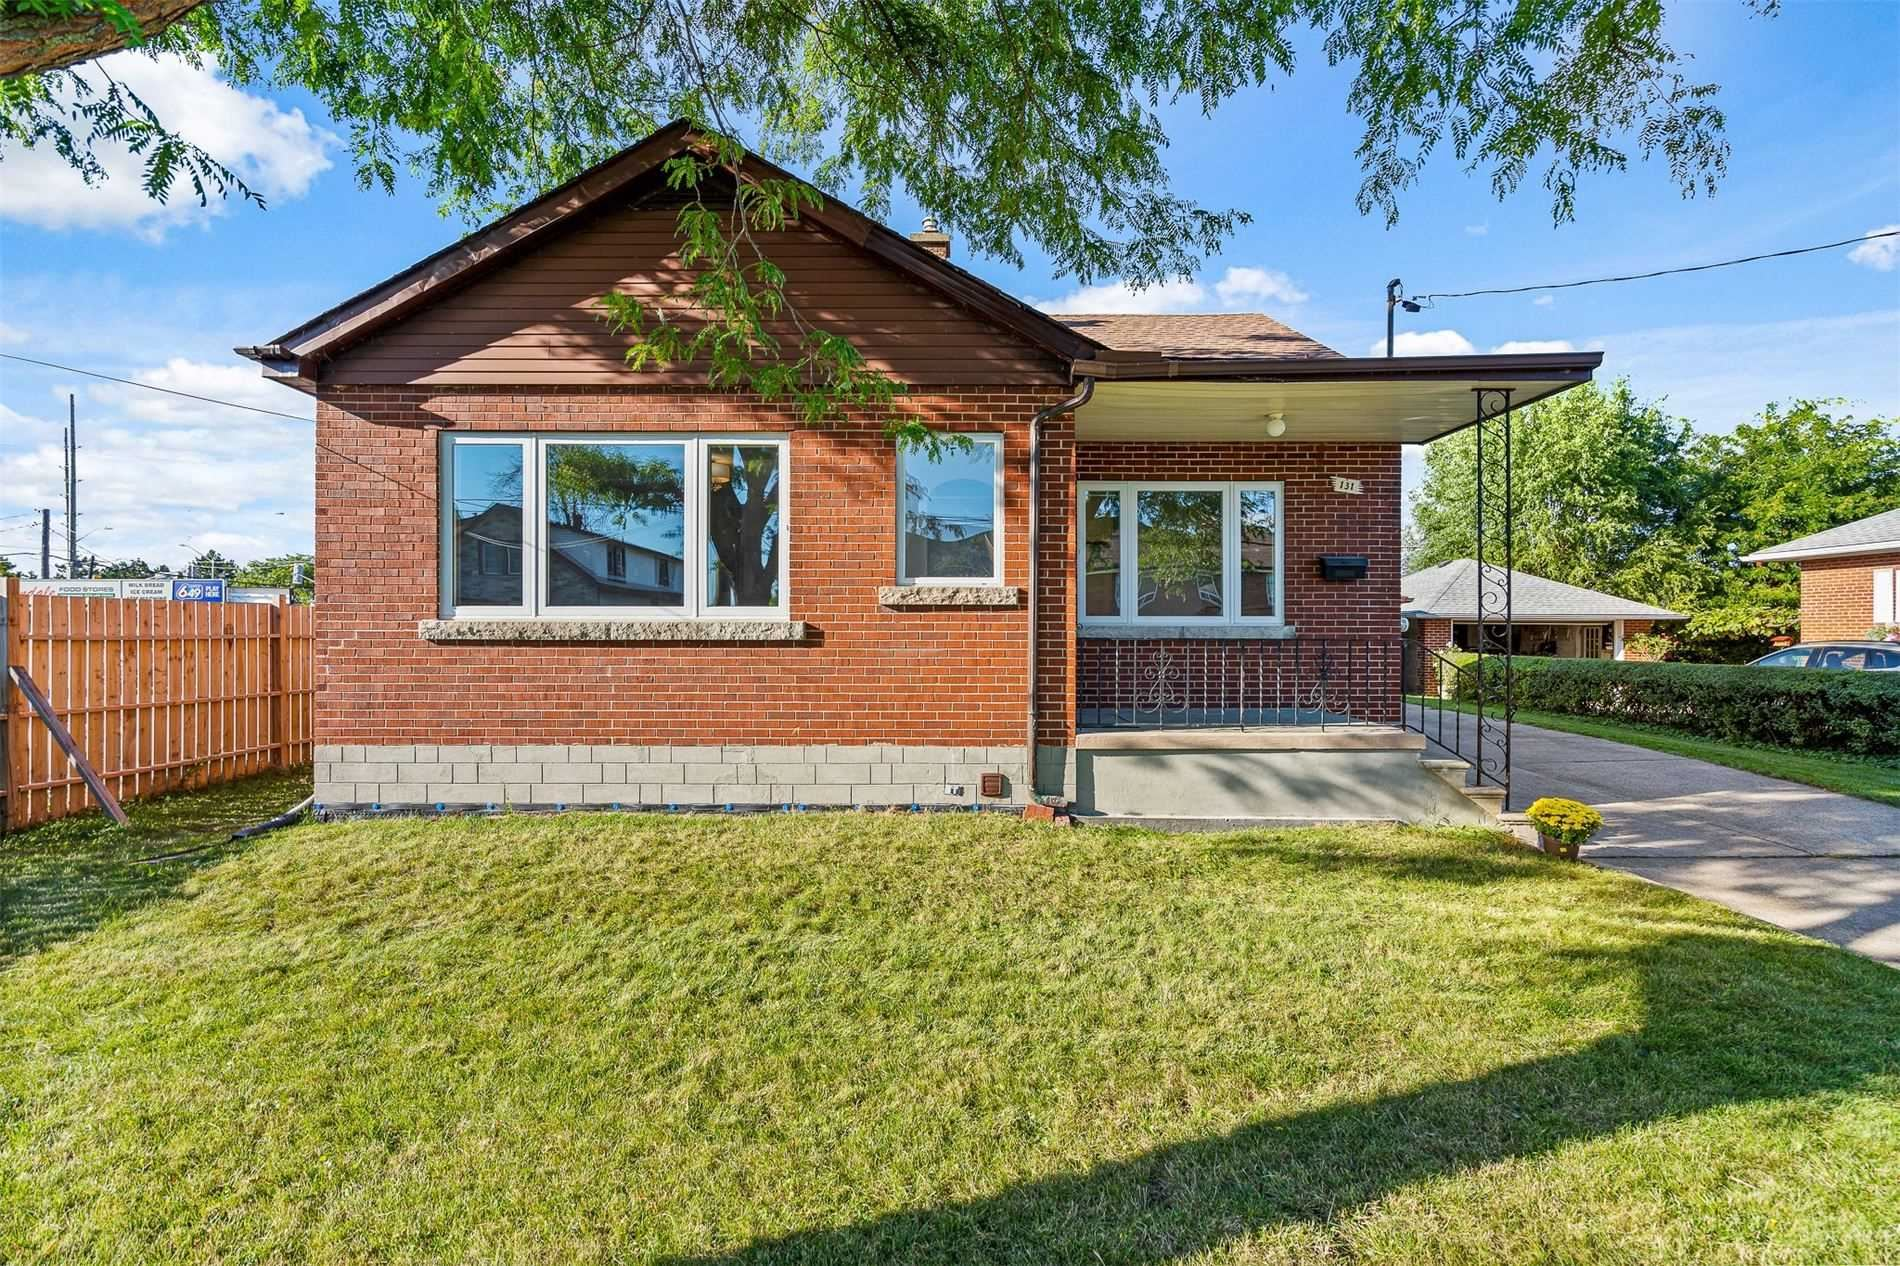 131 Idylewylde St, Fort Erie, ON L2A 2L2 - MLS#: X5377822